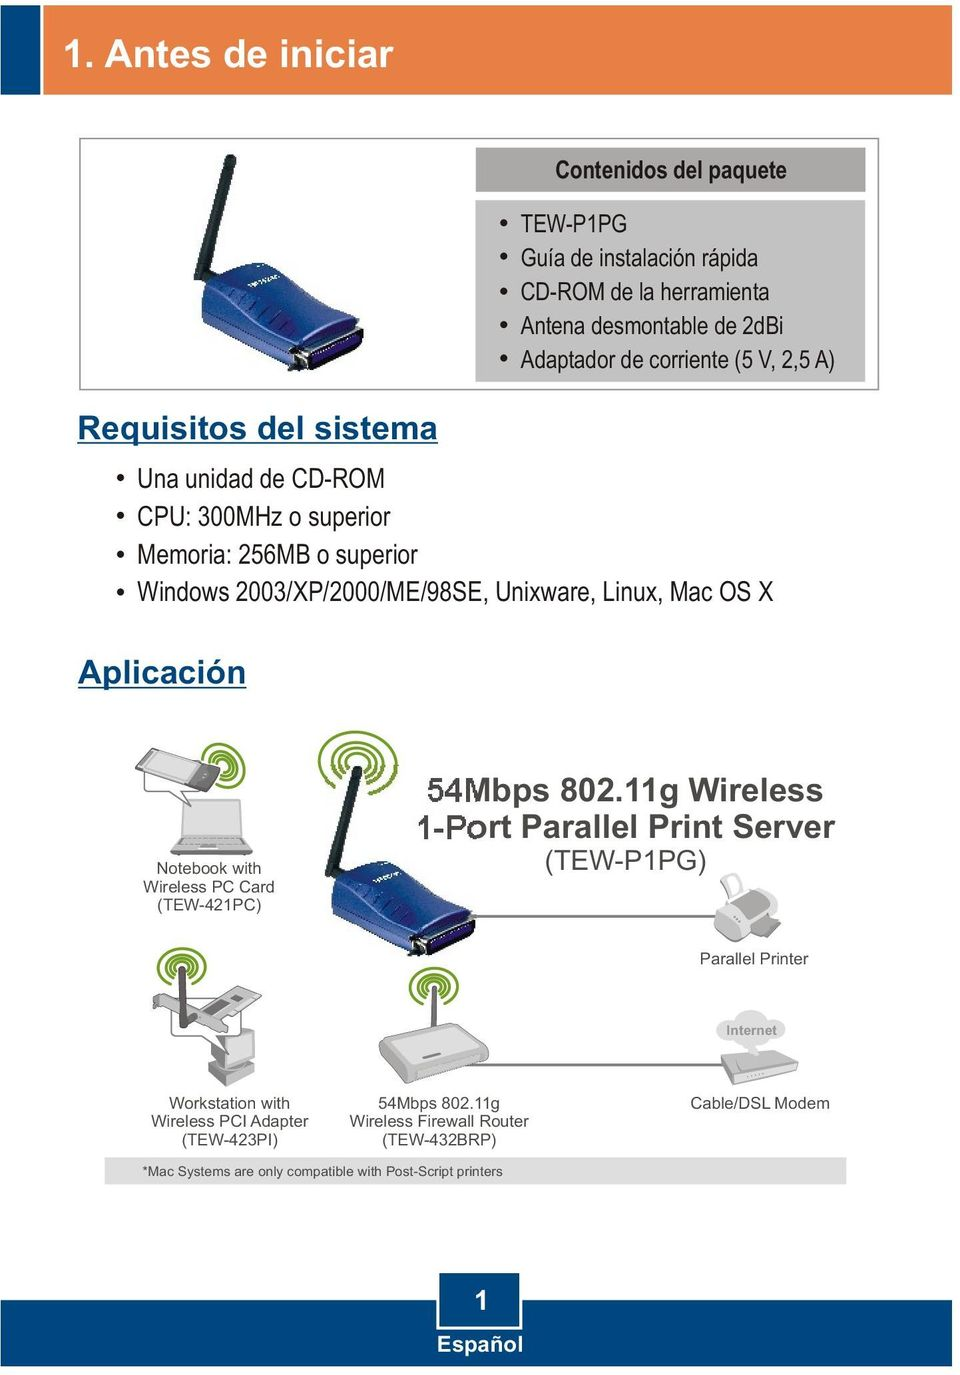 Aplicación Notebook with Wireless PC Card (TEW-421PC) 54Mbps 802.